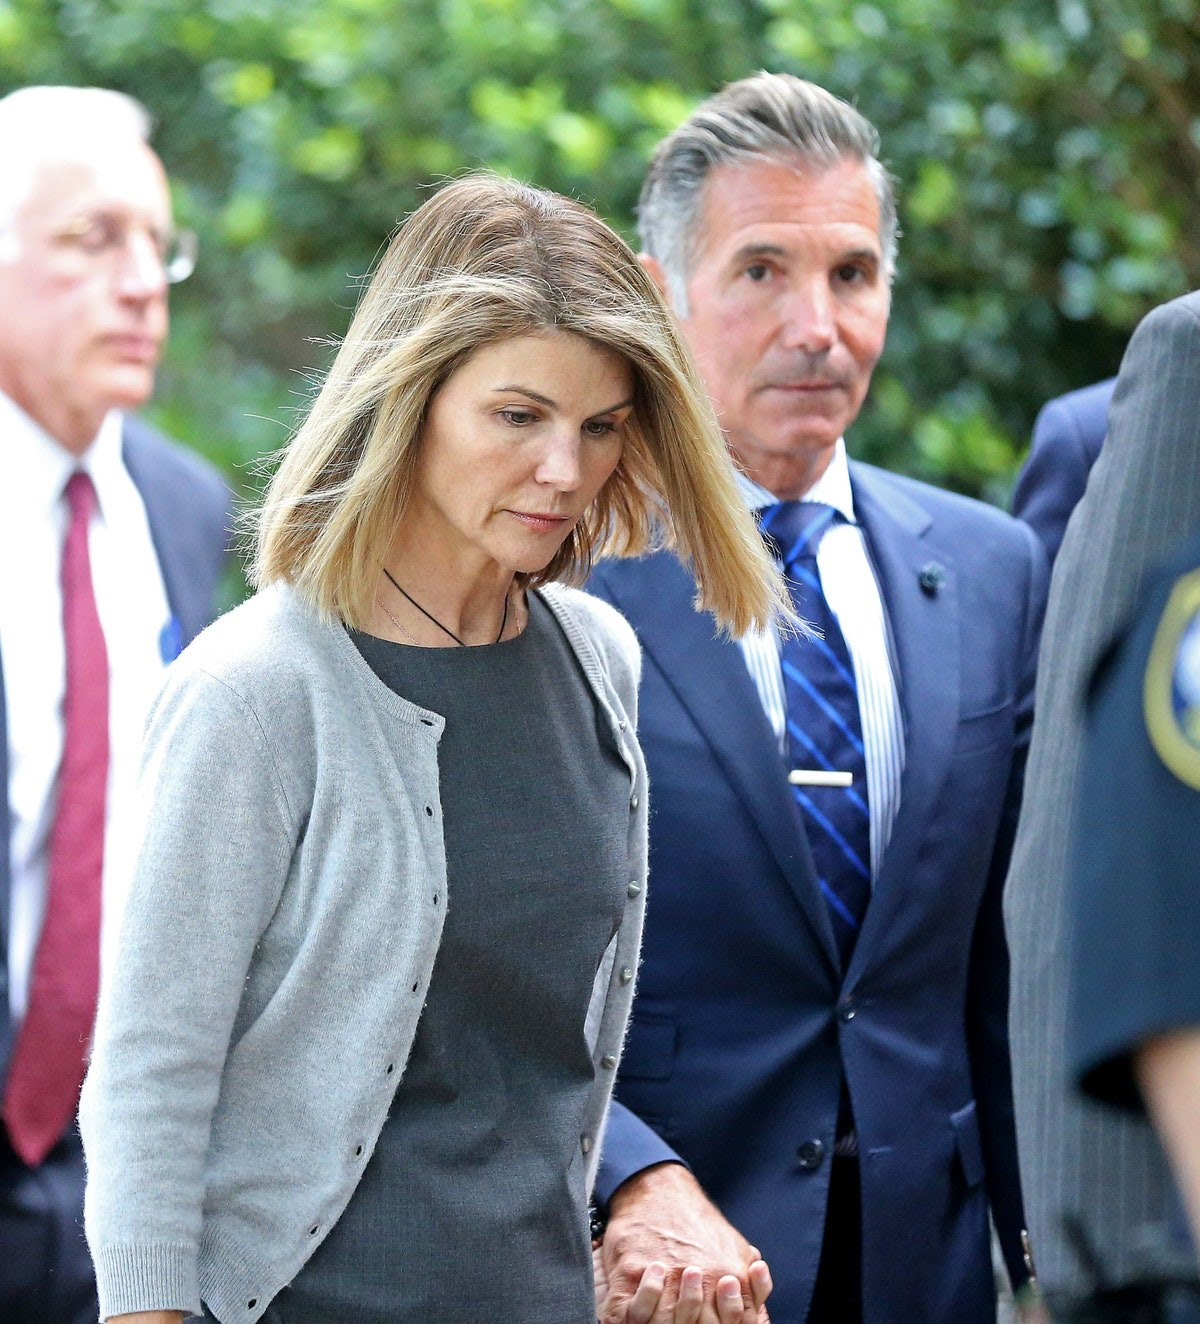 Lori Loughlin's Husband Mossimo Giannulli Experiencing 'Rough Time' at the Prison